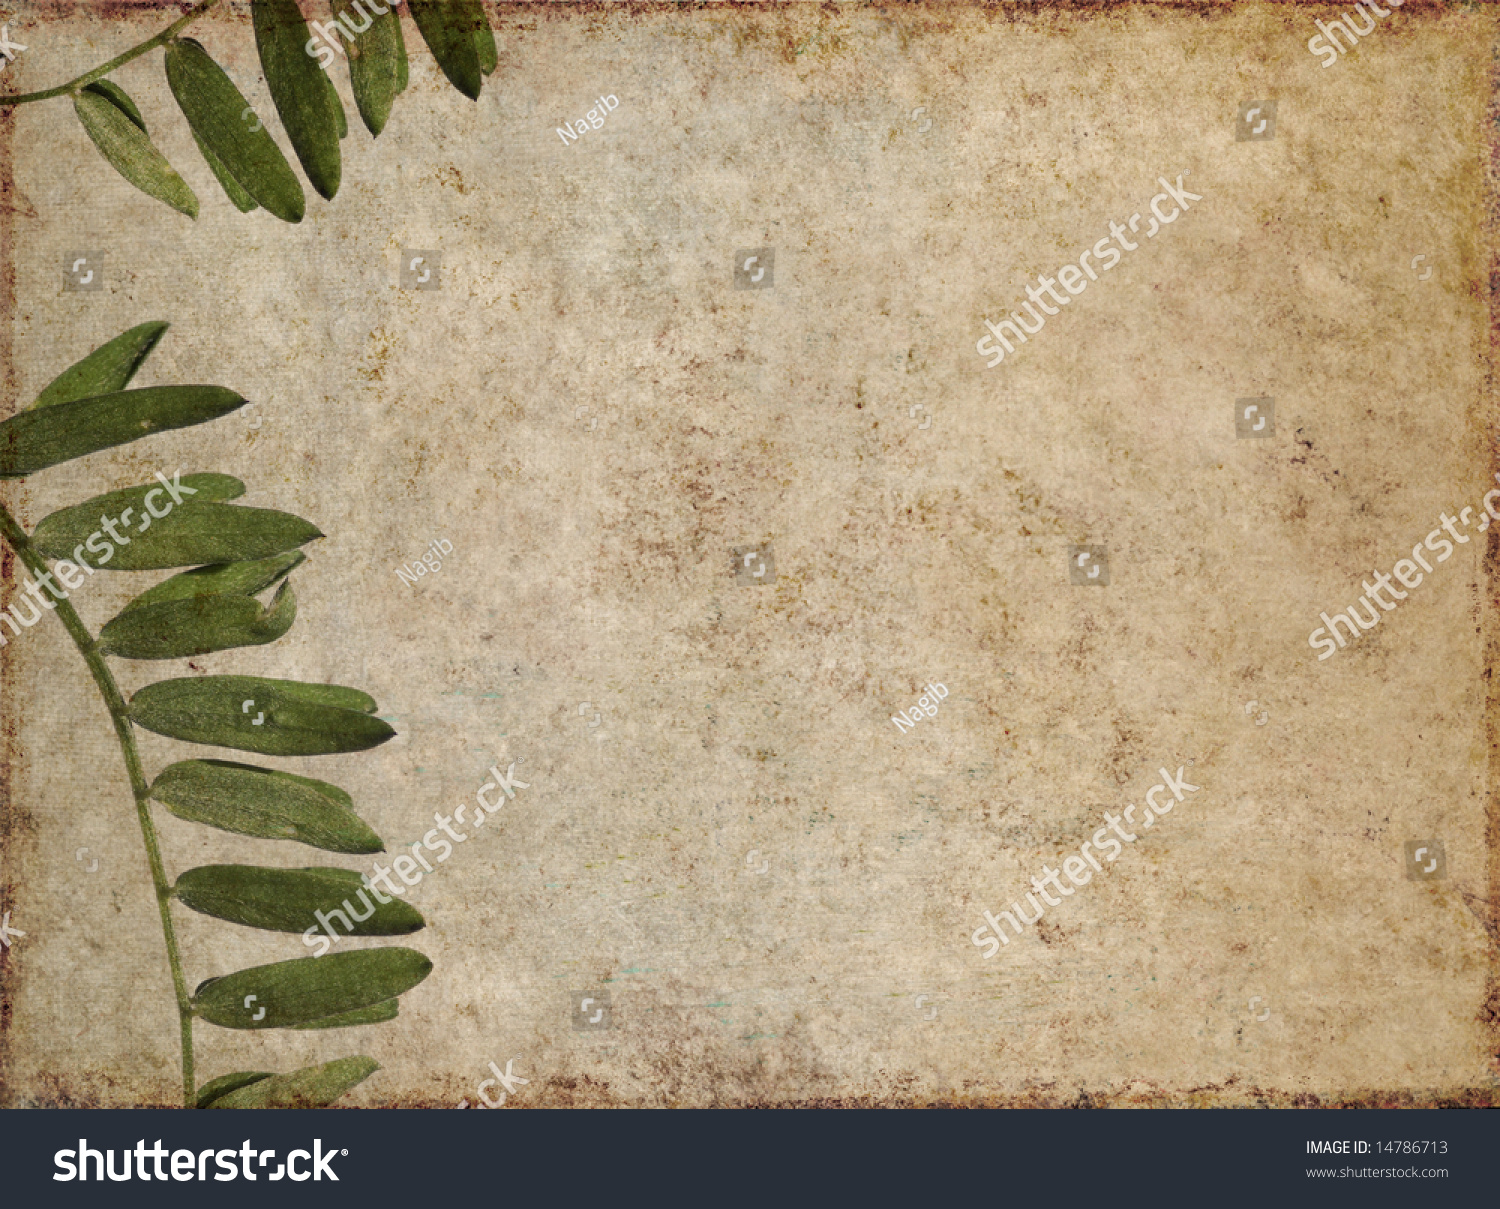 Lovely Brown Background Image With Interesting Earthy ... - photo#46